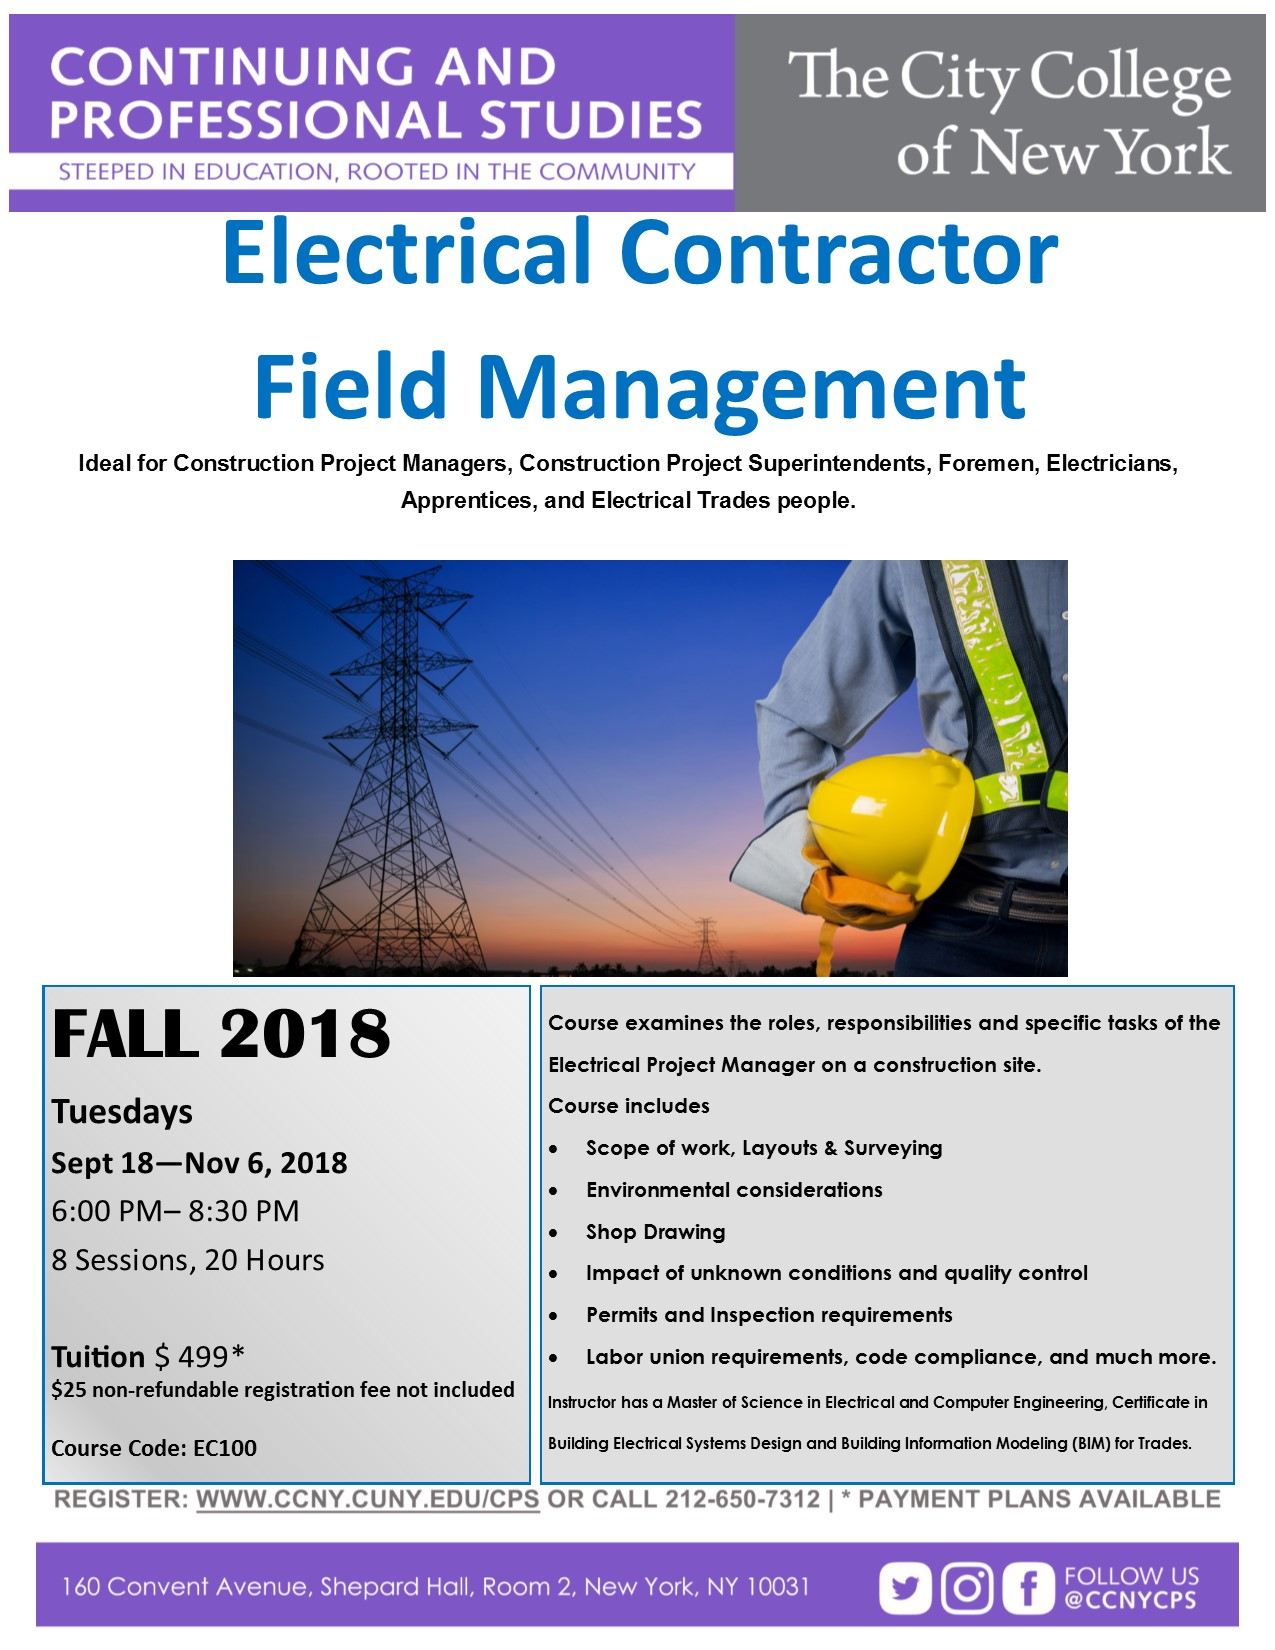 Electrical Contractor Fall